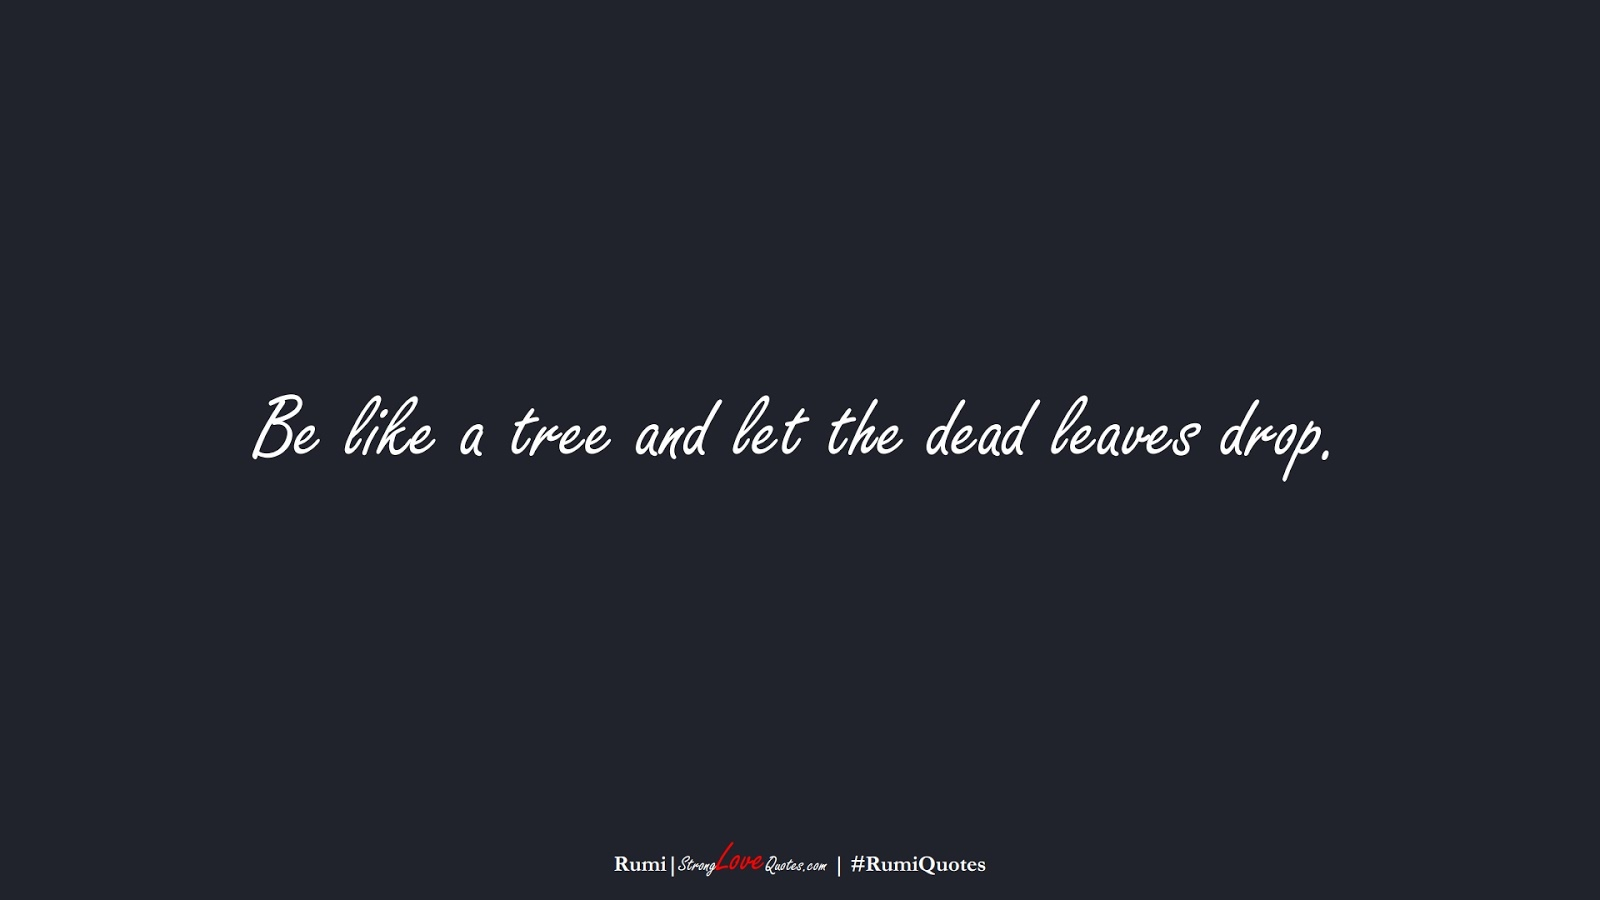 Be like a tree and let the dead leaves drop. (Rumi);  #RumiQuotes